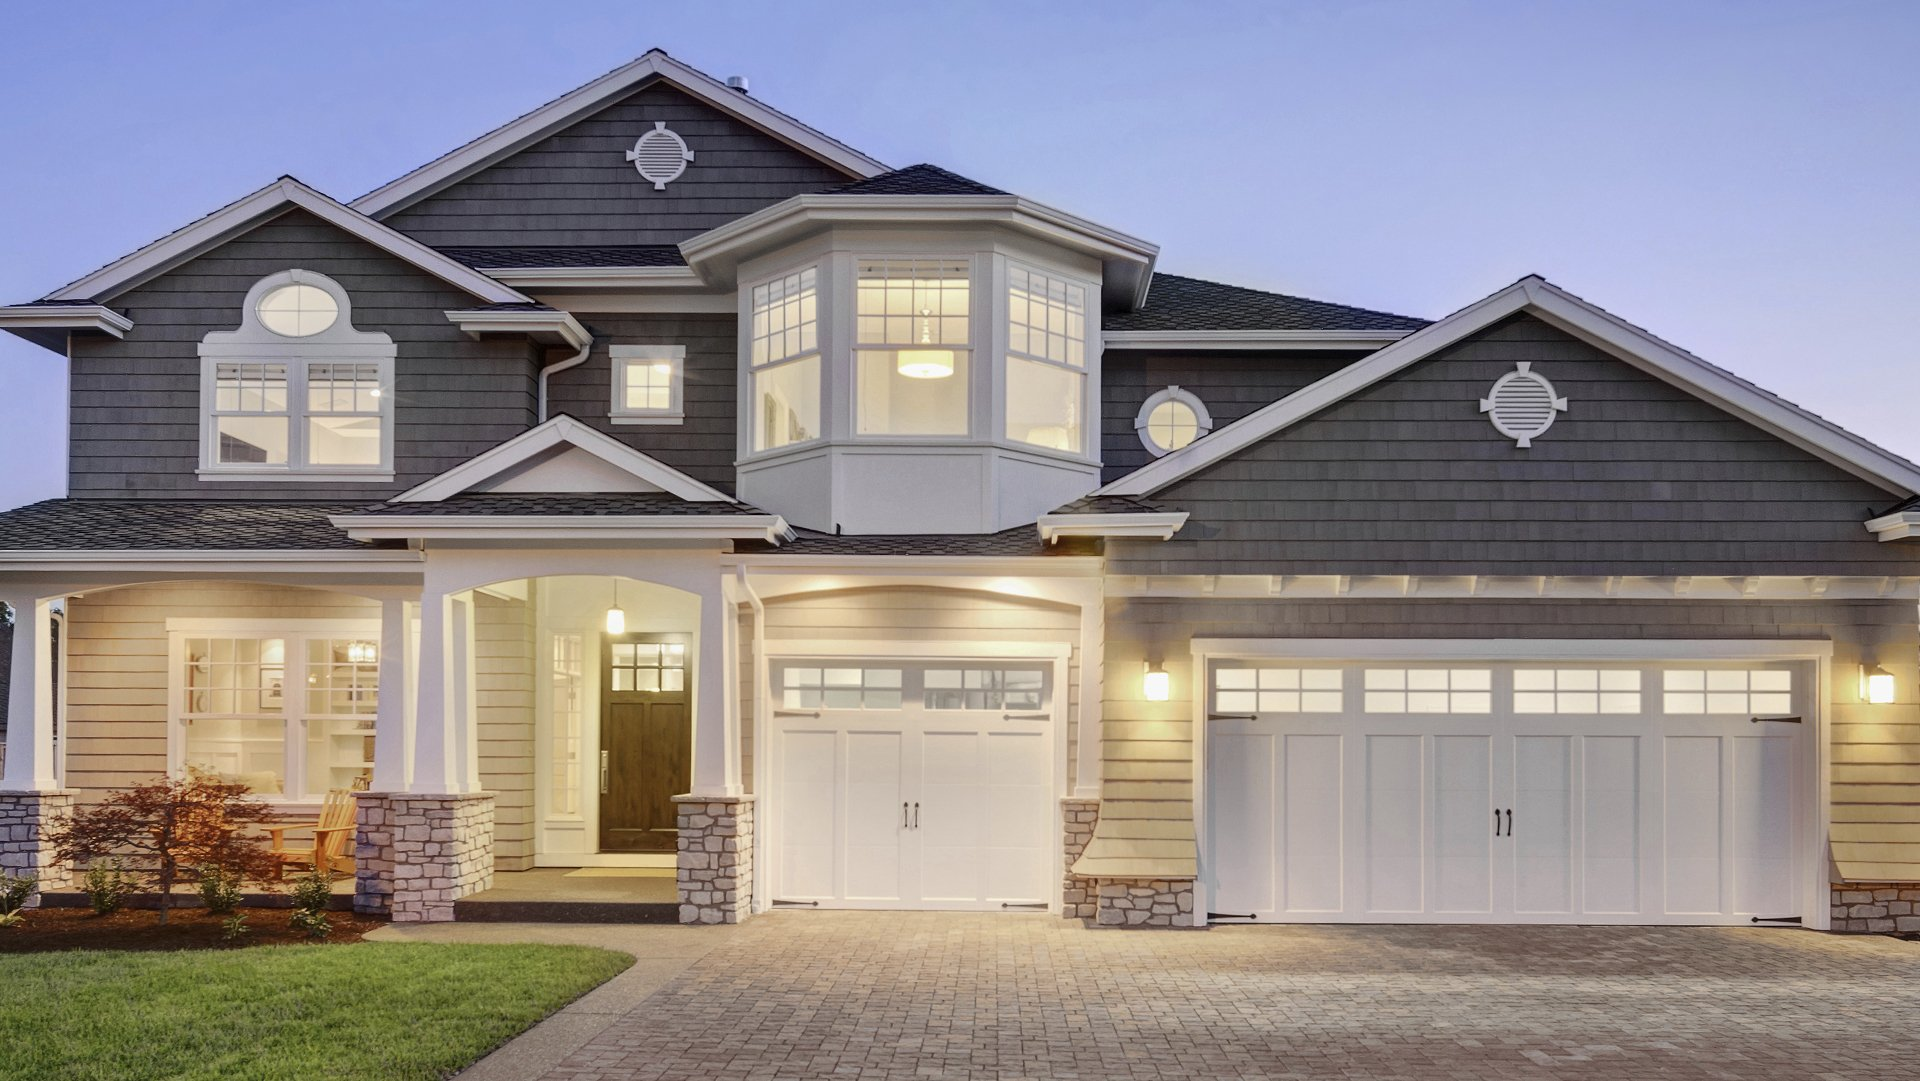 Home Builder, Custom Home Builder and General Contractor Frequently Asked Questions slide 3